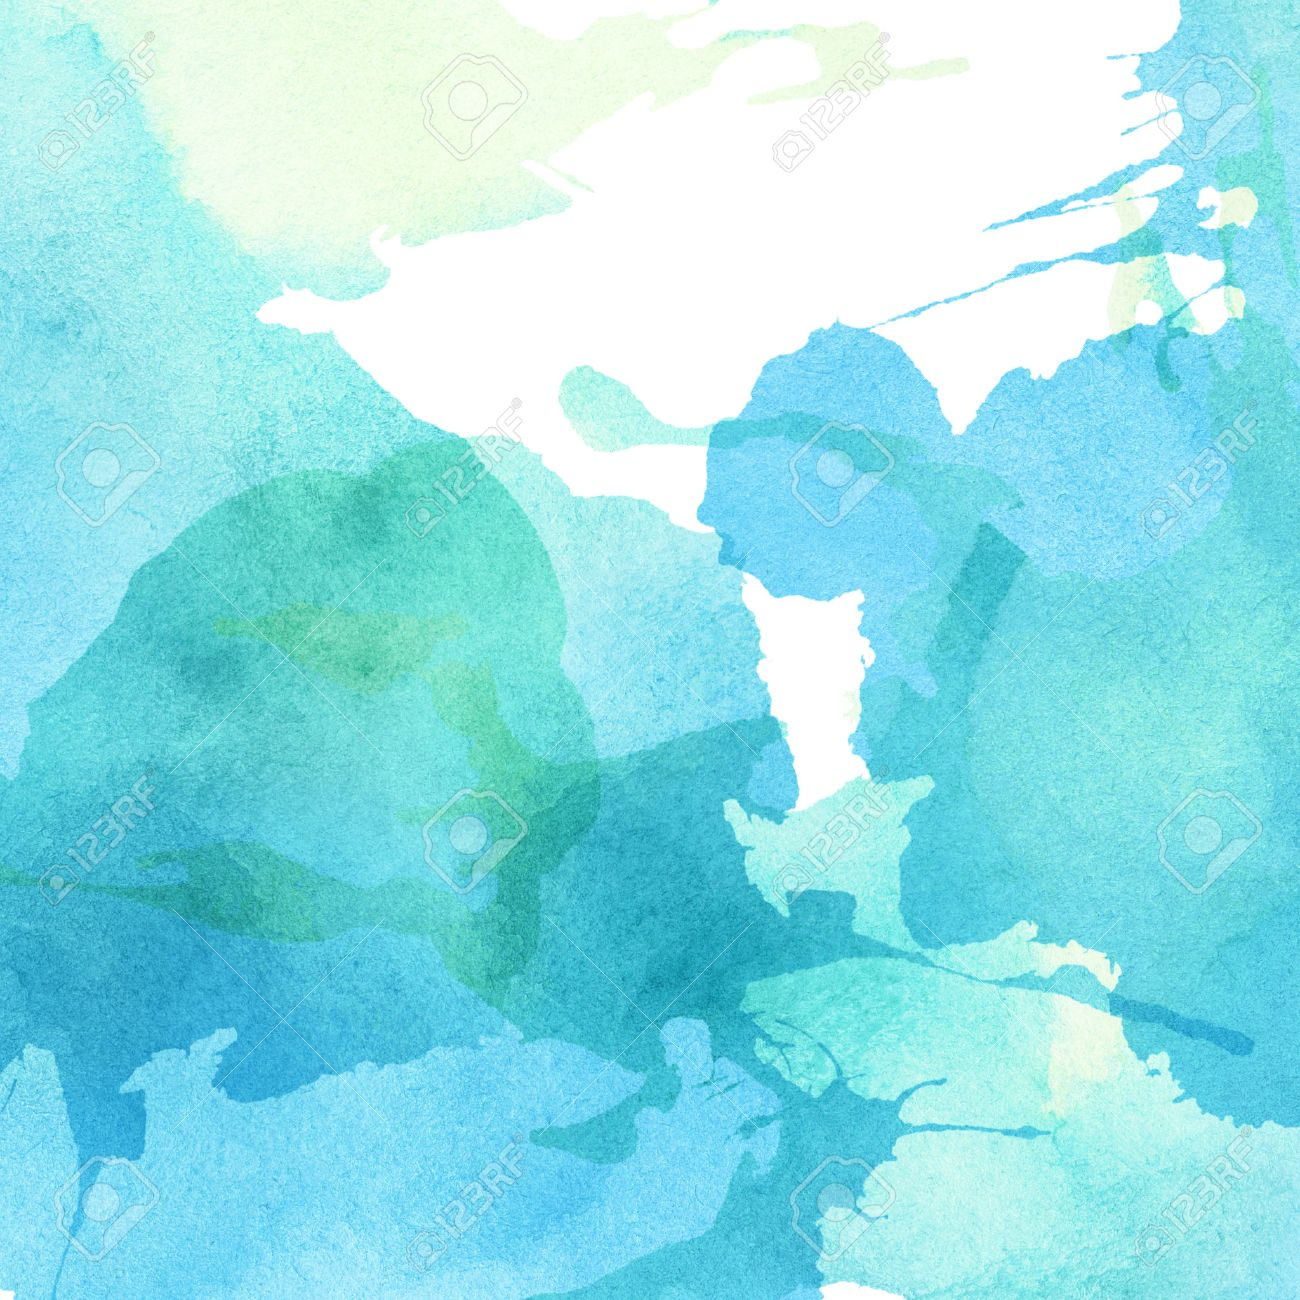 Light abstract blue, green painted watercolor splashes background. Stock Photo - 51250159